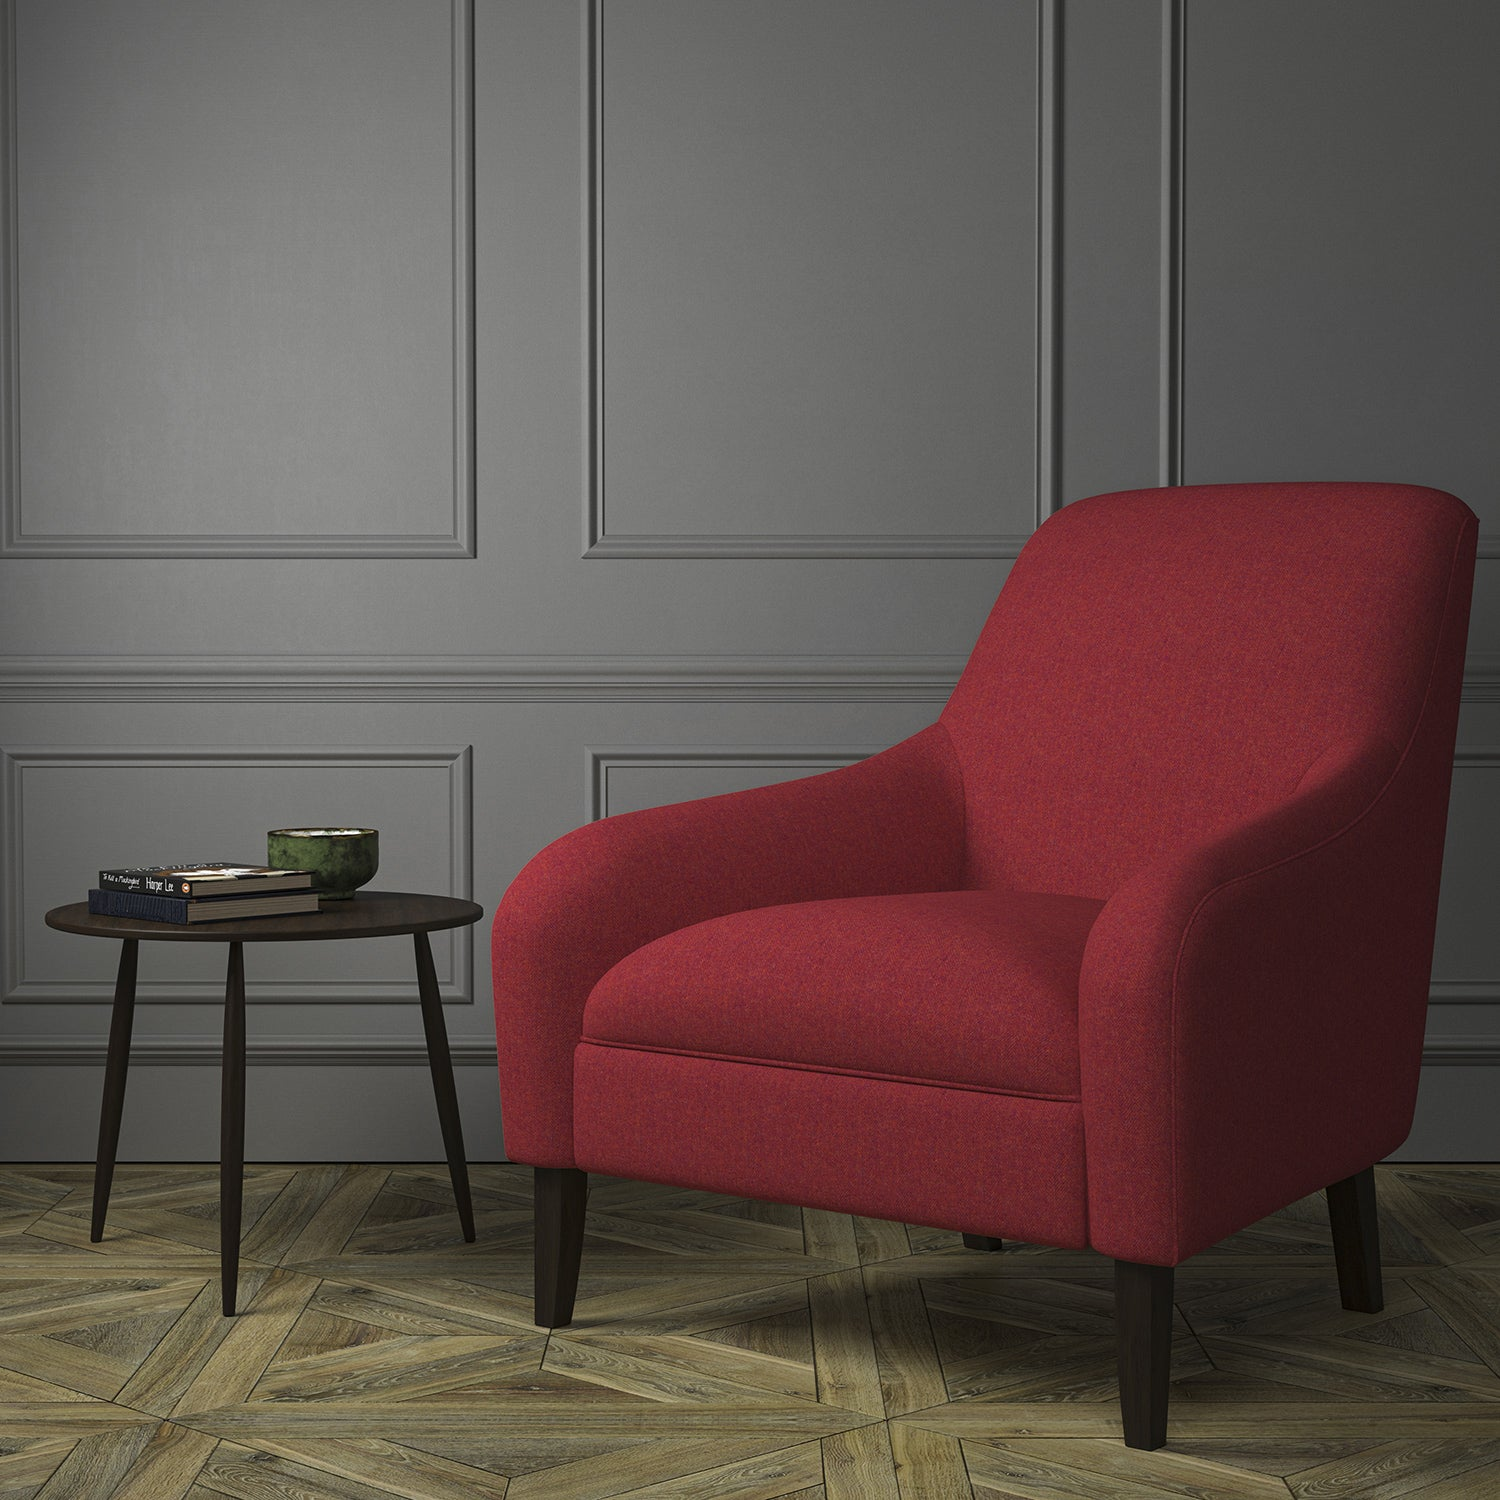 Chair upholstered in a red Scottish wool herringbone fabric